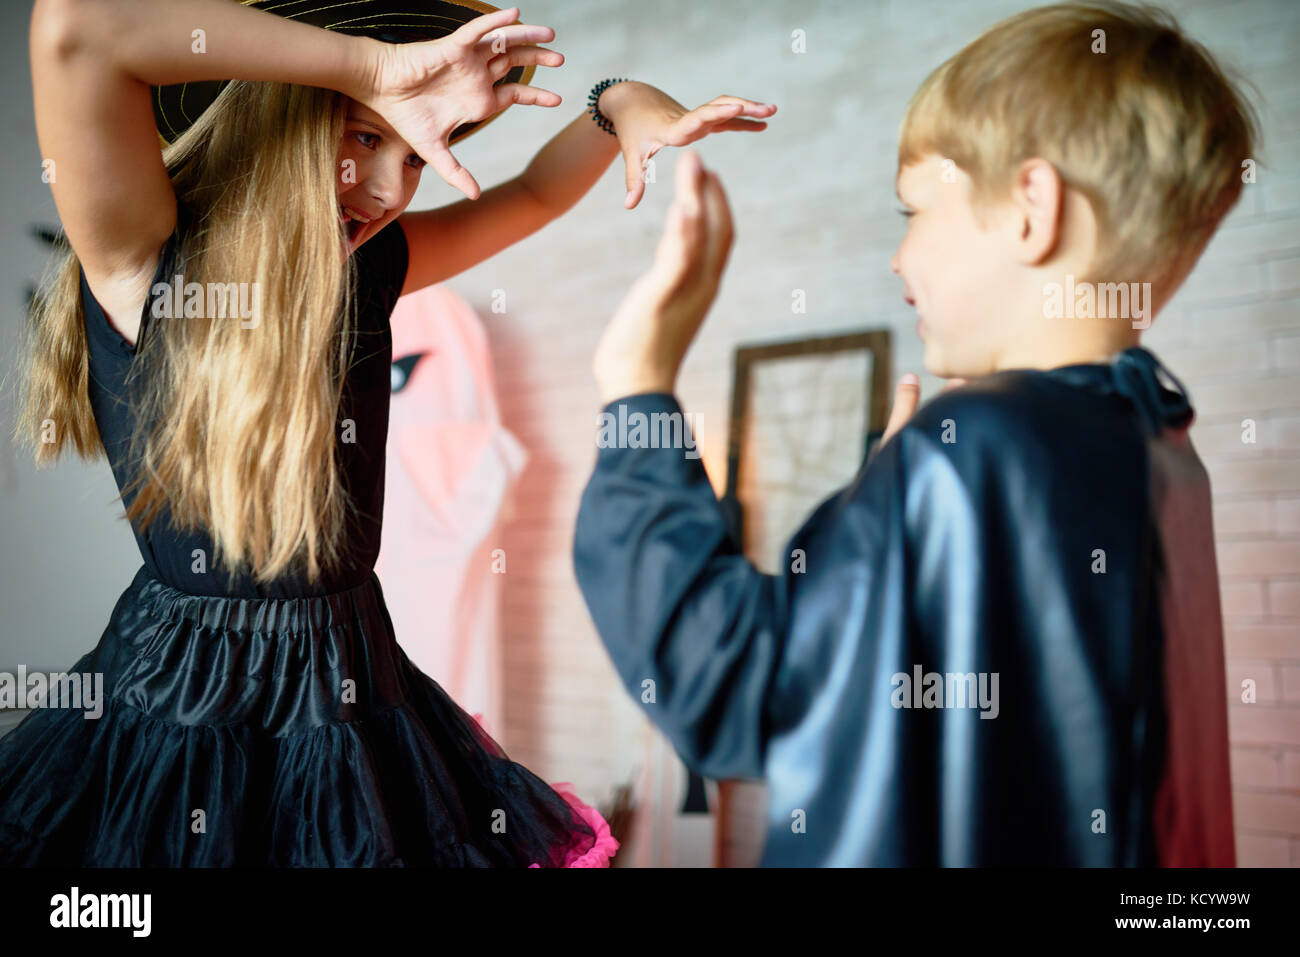 Portrait of teenage girl wearing witch costume trying to scare little boy on Halloween - Stock Image